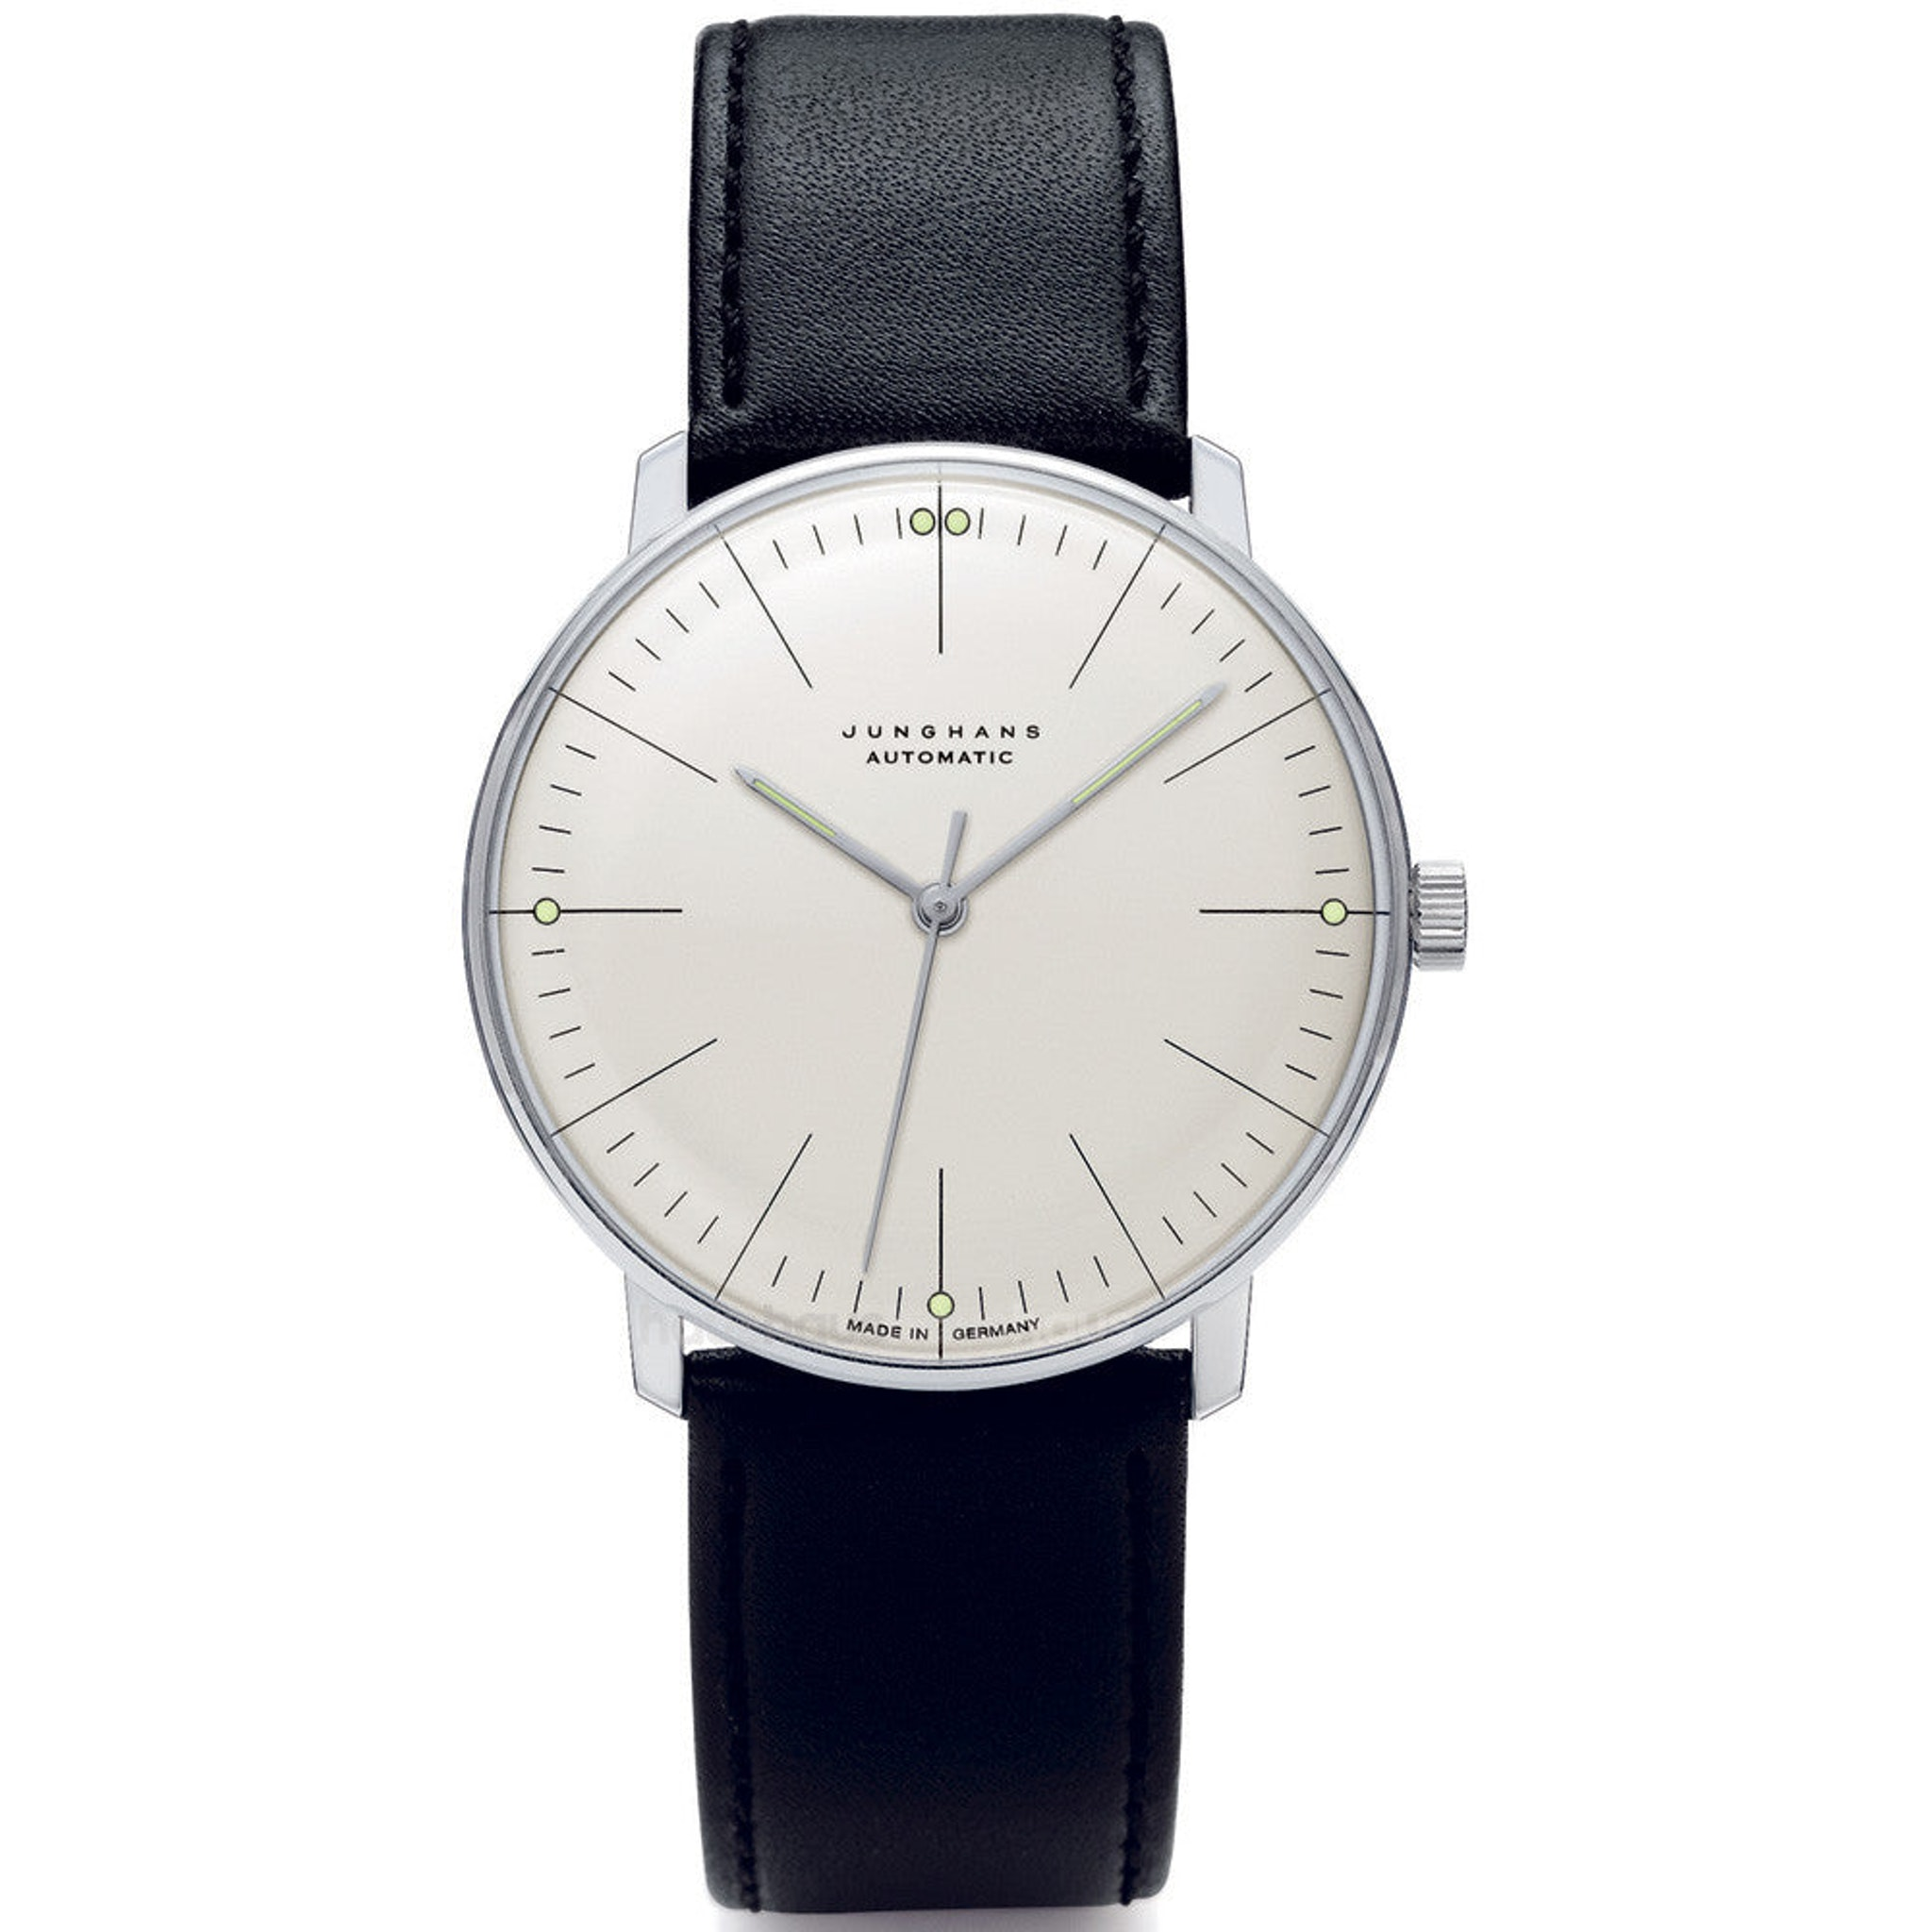 Max Bill 027/3501.00 Automatic watch by Junghans